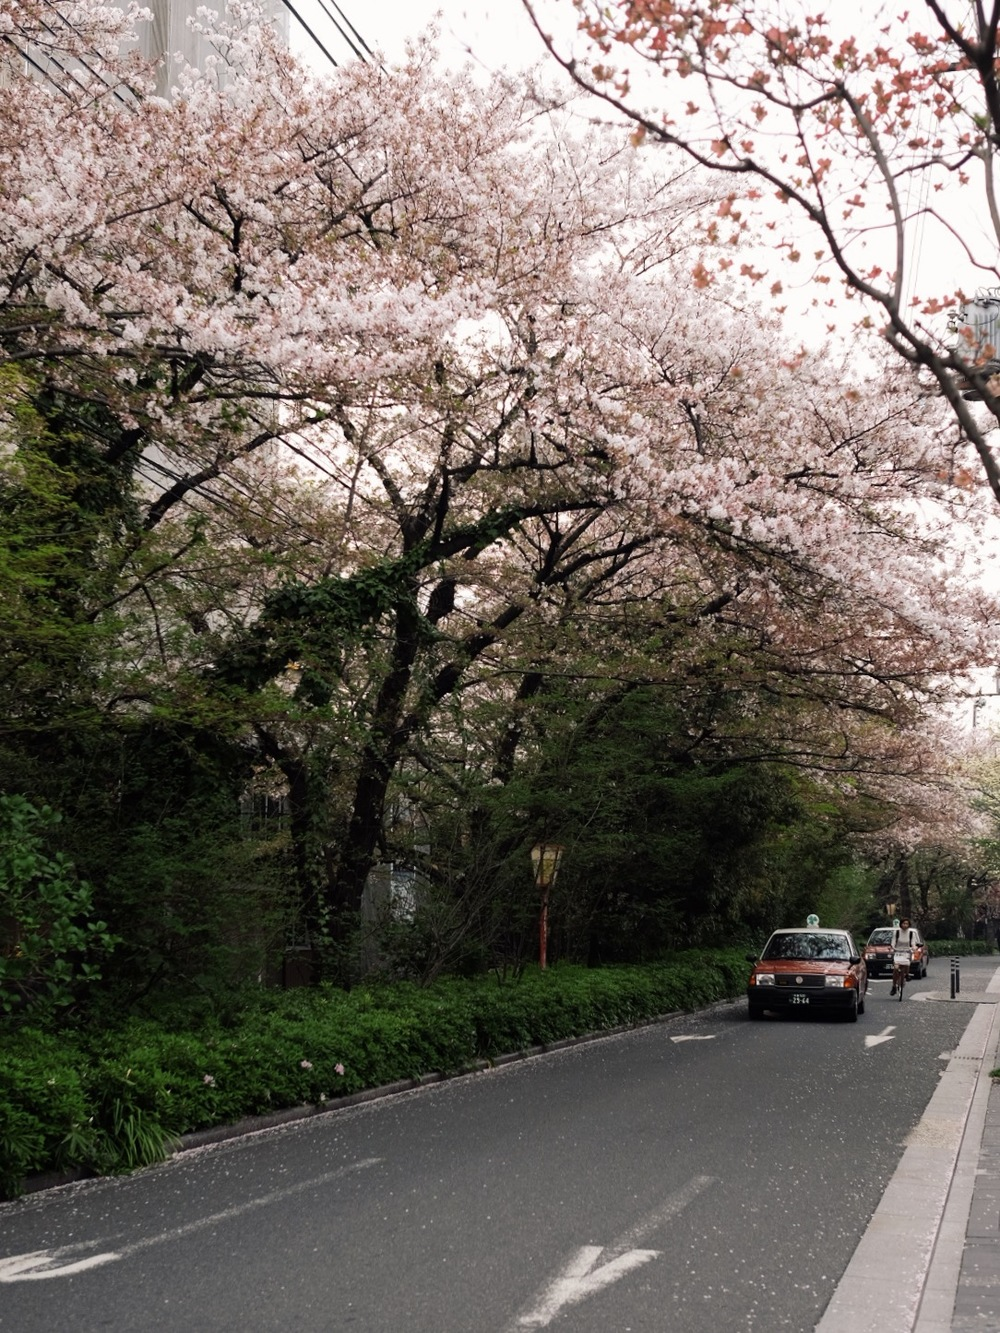 Cherry blossom trees in Kyoto